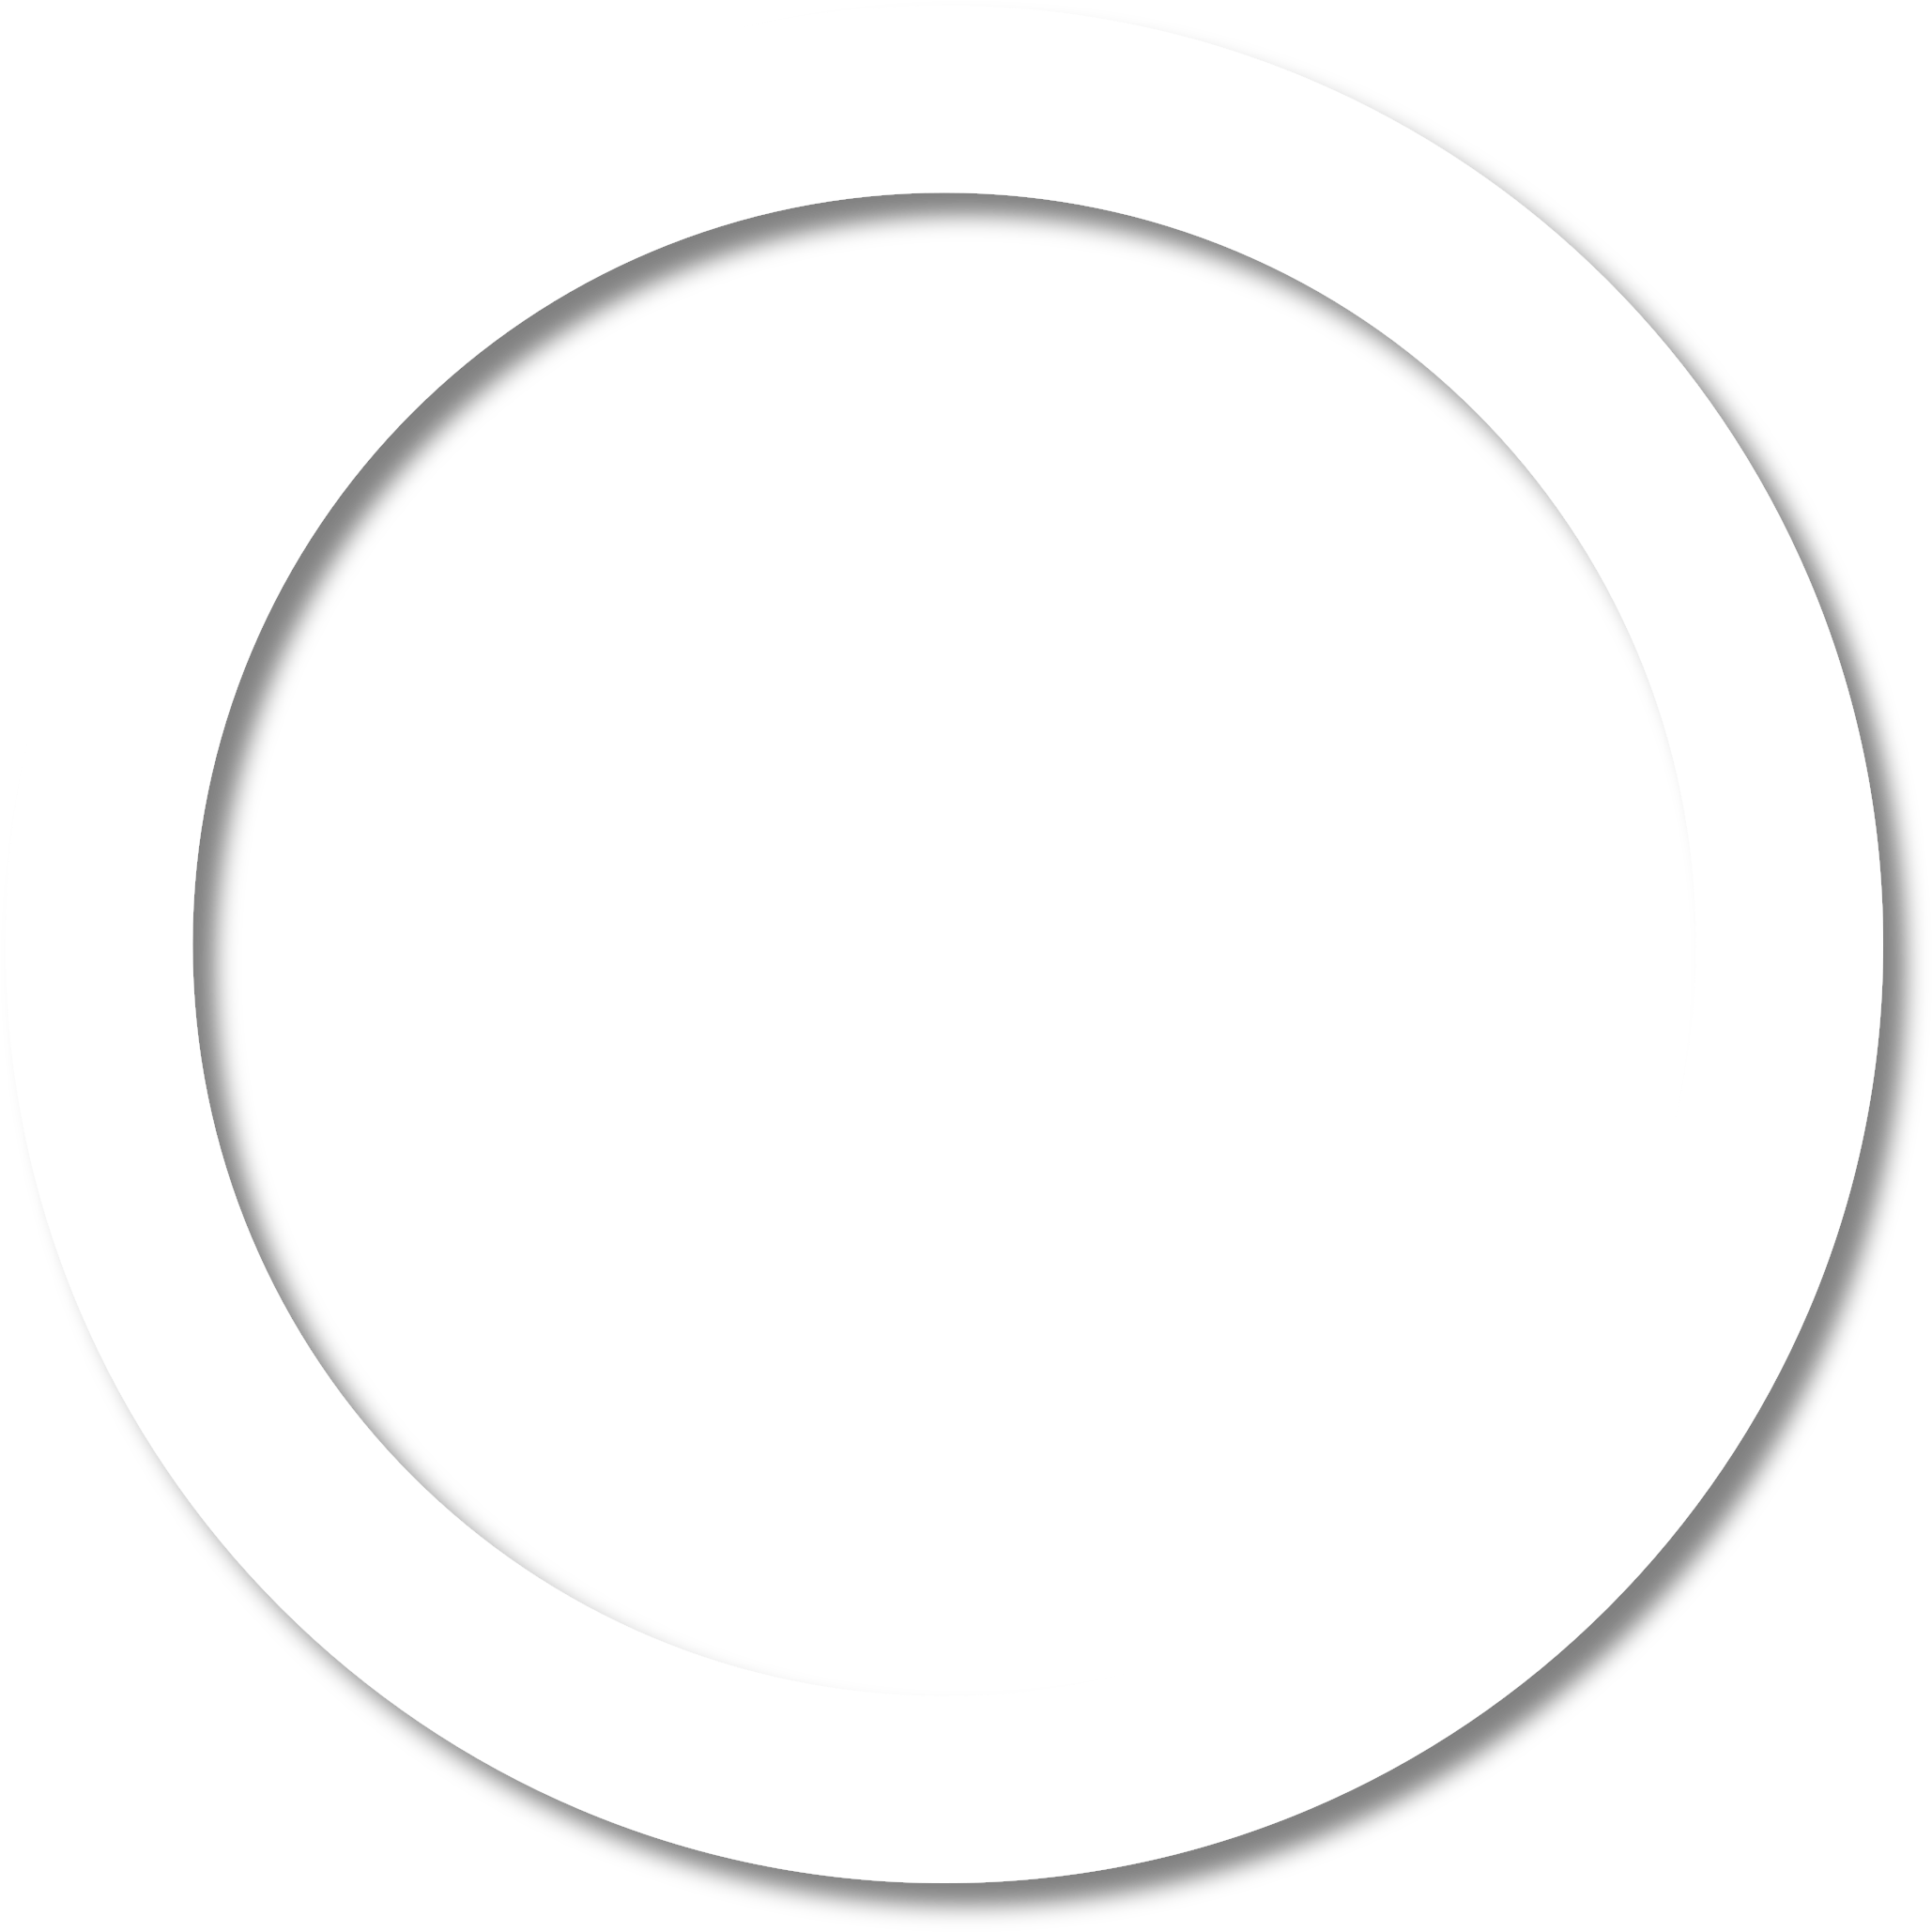 White Circle Outline Png Www Imgkid Com The Image Kid - Circle Clipart (800x800), Png Download